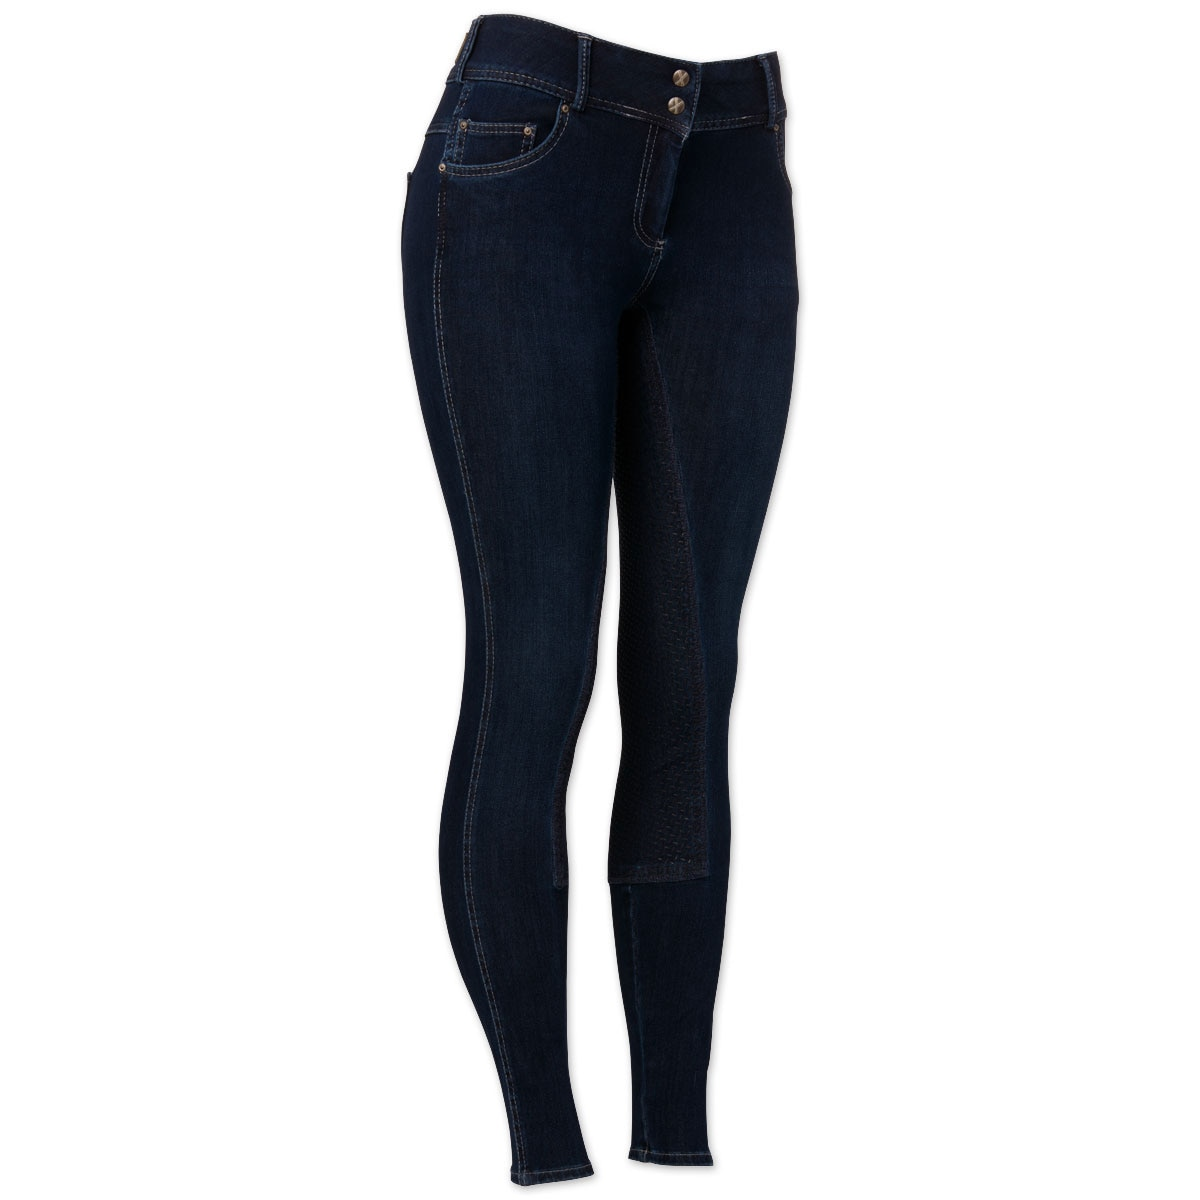 Goode Rider Vogue Denim Full Seat Breech